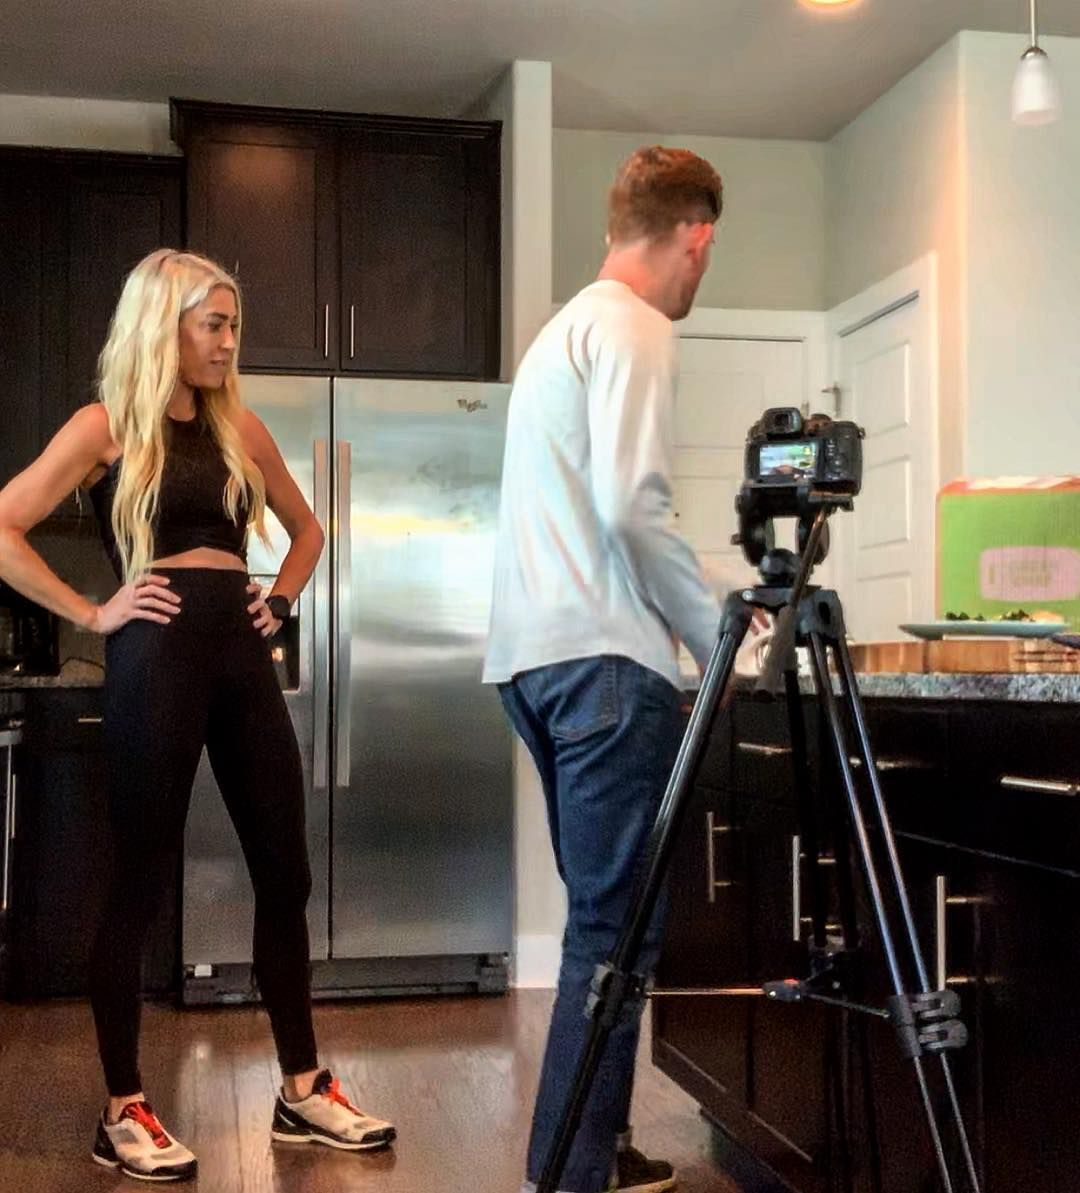 [New] The 10 Best Home Decor (with Pictures) -  Ready to spend another awesome day in the @barbend kitchen whipping up some magical reviews.  Subscribe to our @youtube channel to see what weve got cookin!  #barbend #food #foodie #athlete #nutrition #macros #health #fitness #fitspo #reviews #blog #foodreview #strongman #crossfit #powerlifting #endurance #sports #themoreyouknow #athletenutrition [New] The 10 Best Home Decor (with Pictures) -  Ready to spend another awesome day in the @barbend kitc #athletenutrition